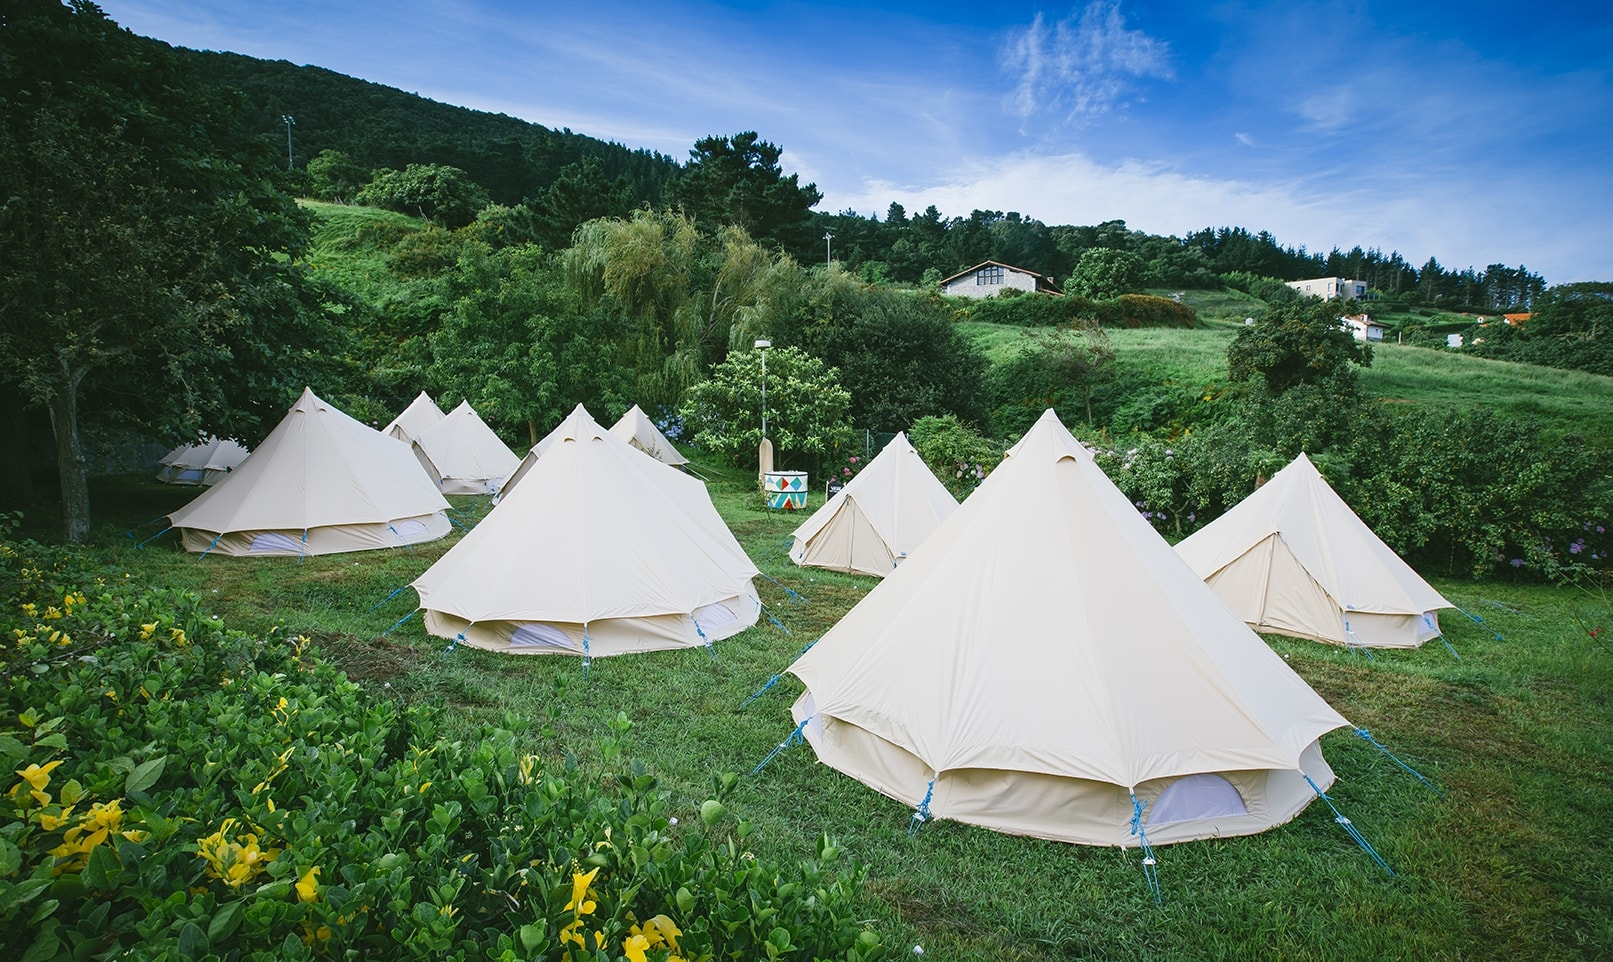 Holding a festival and want to offer glamping? Chat with the Snazzy Camp team about your needs.